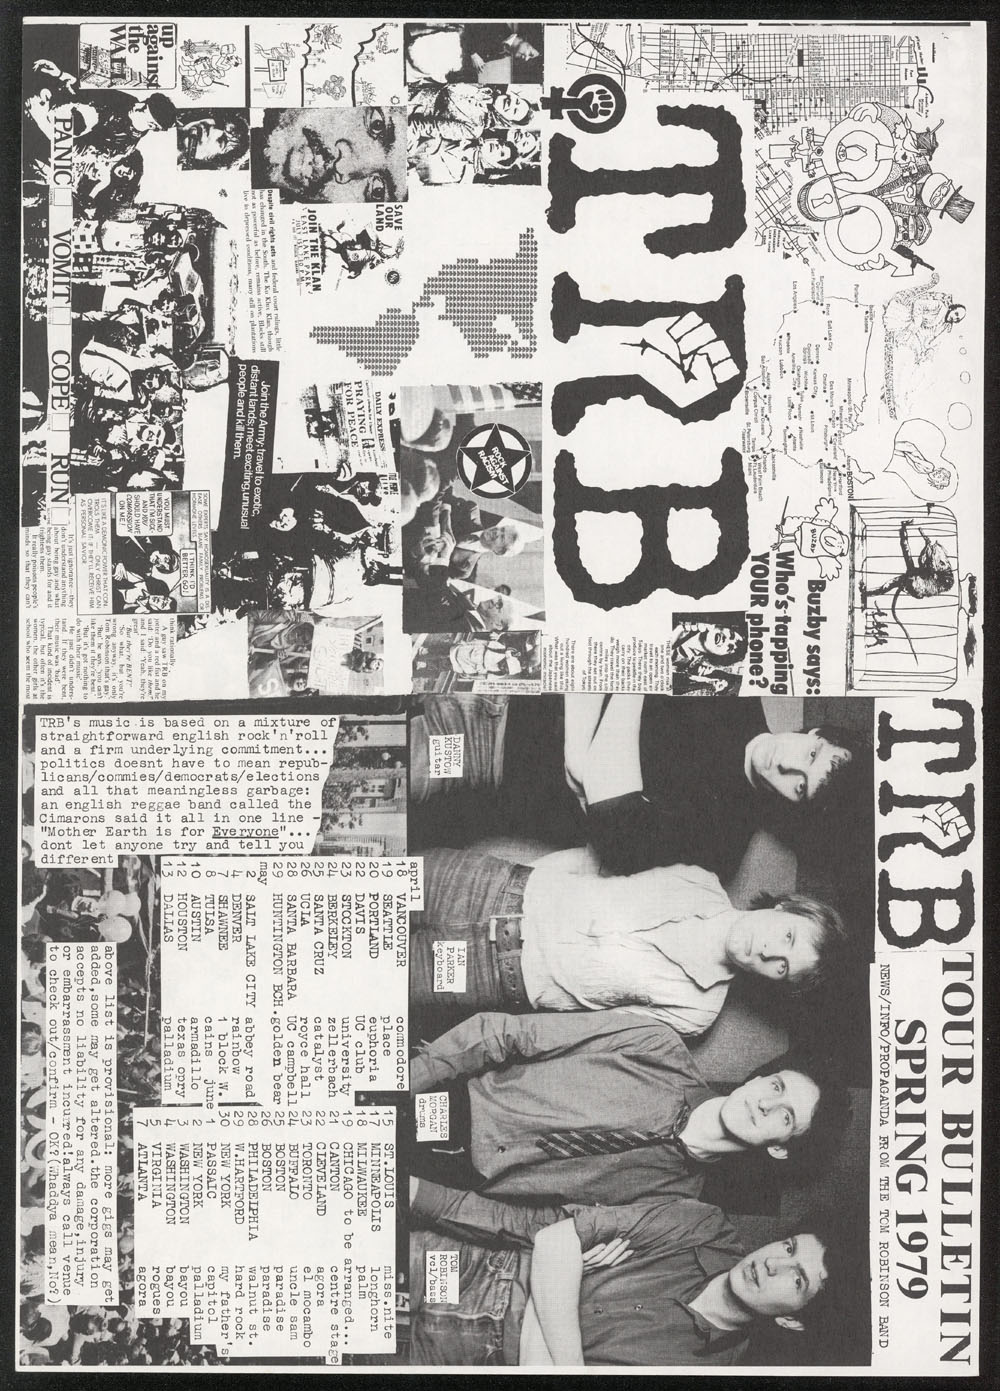 TOM ROBINSON BAND tour bulletin